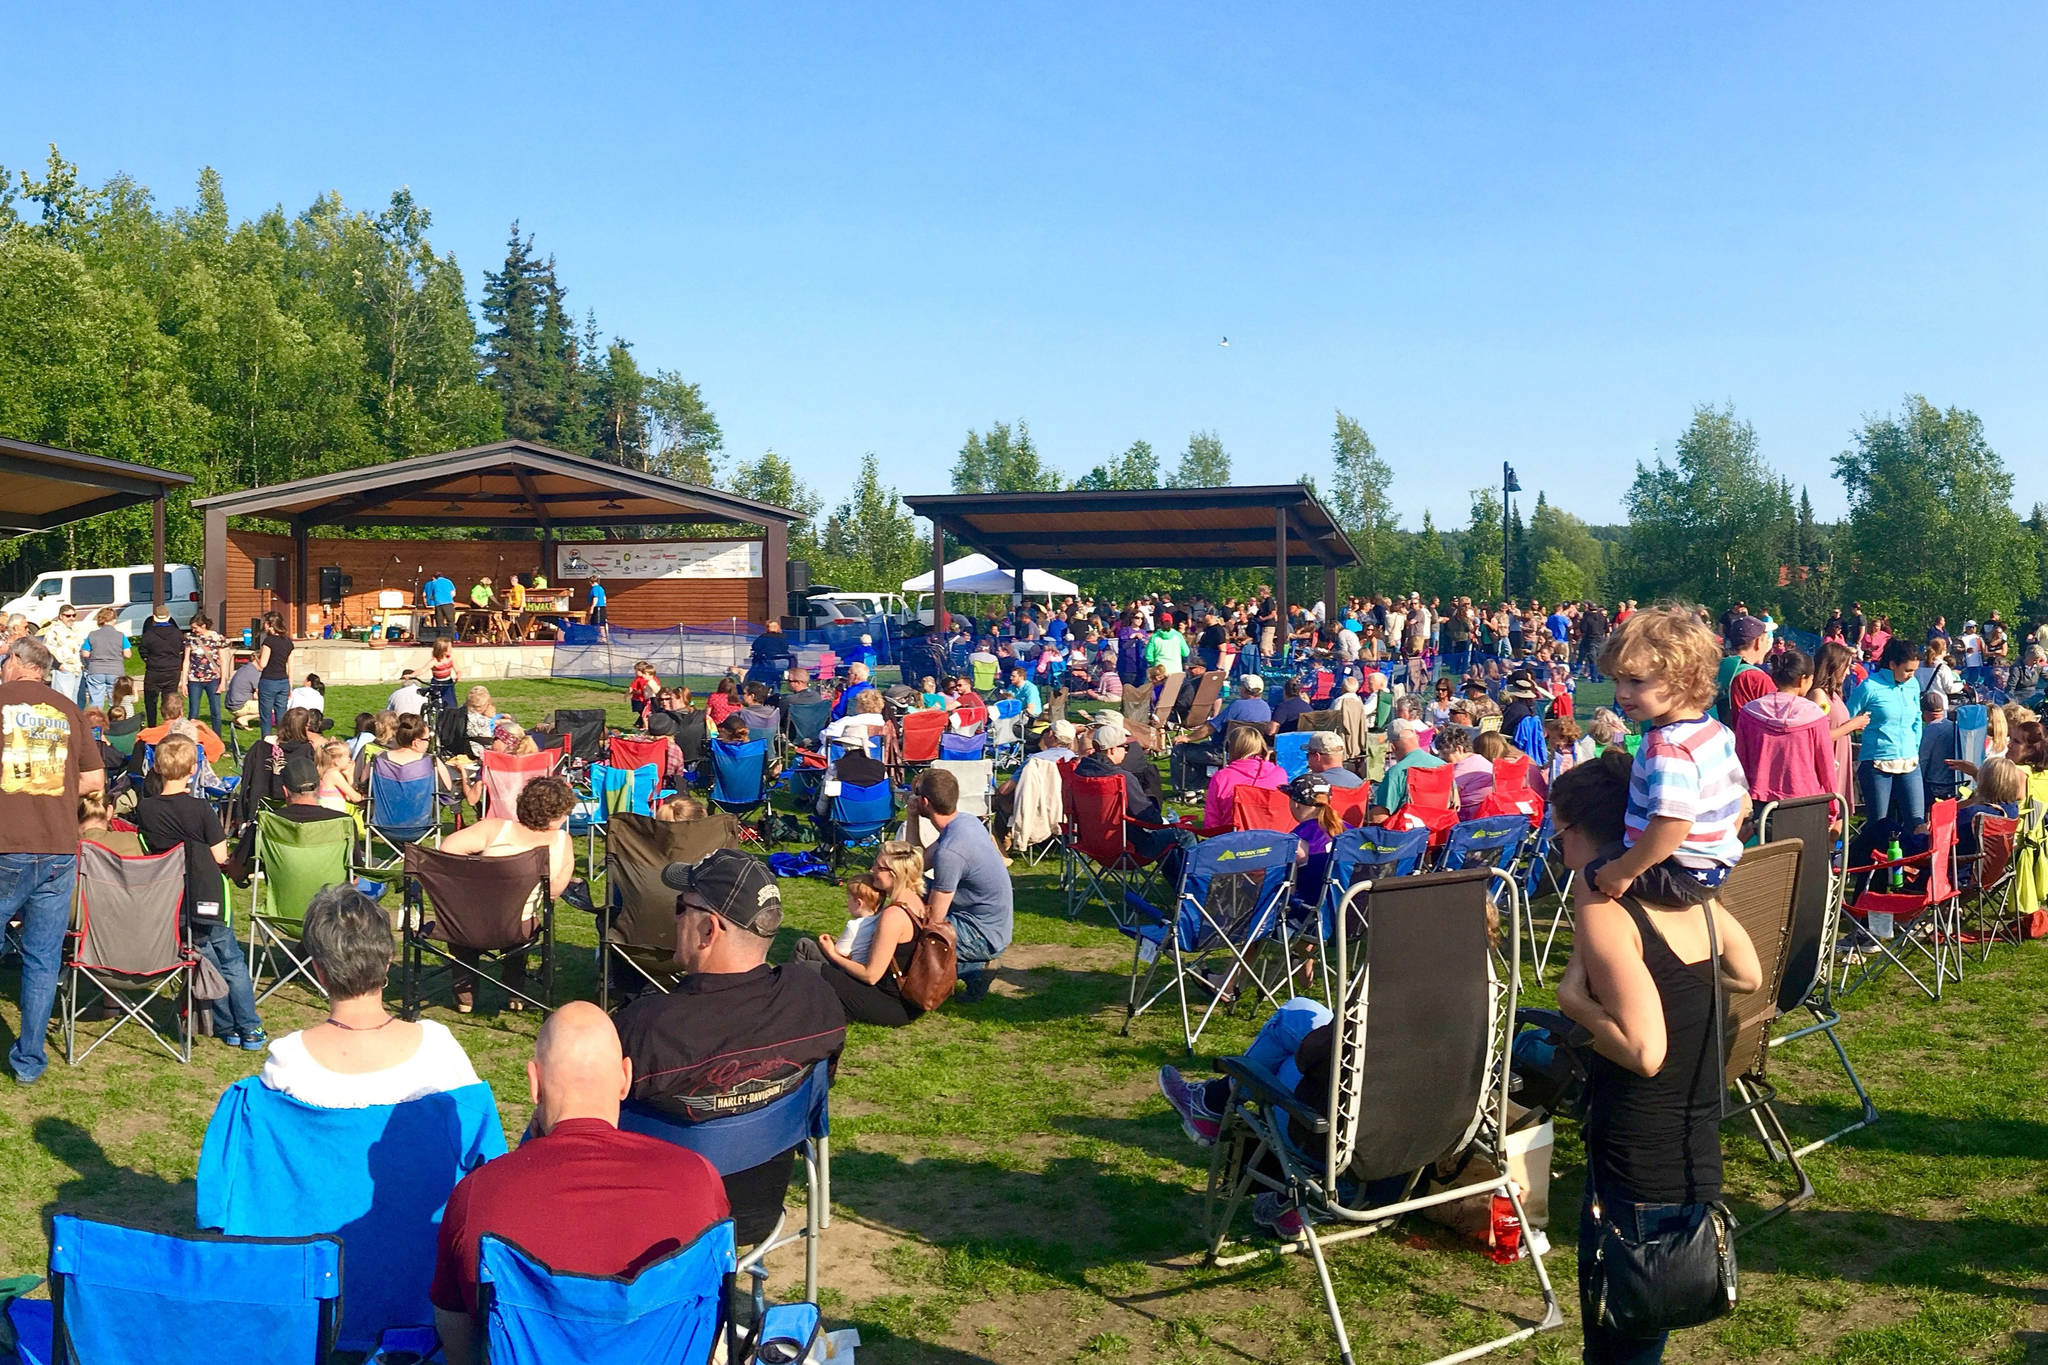 Concertgoers listen during one of the weekly concerts in the park, put on as part of the Levitt AMP Soldotna Music Series in Soldotna, Alaska, in the summer of 2017. (Photo courtesy Andrew Heuiser/Soldotna Chamber of Commerce)